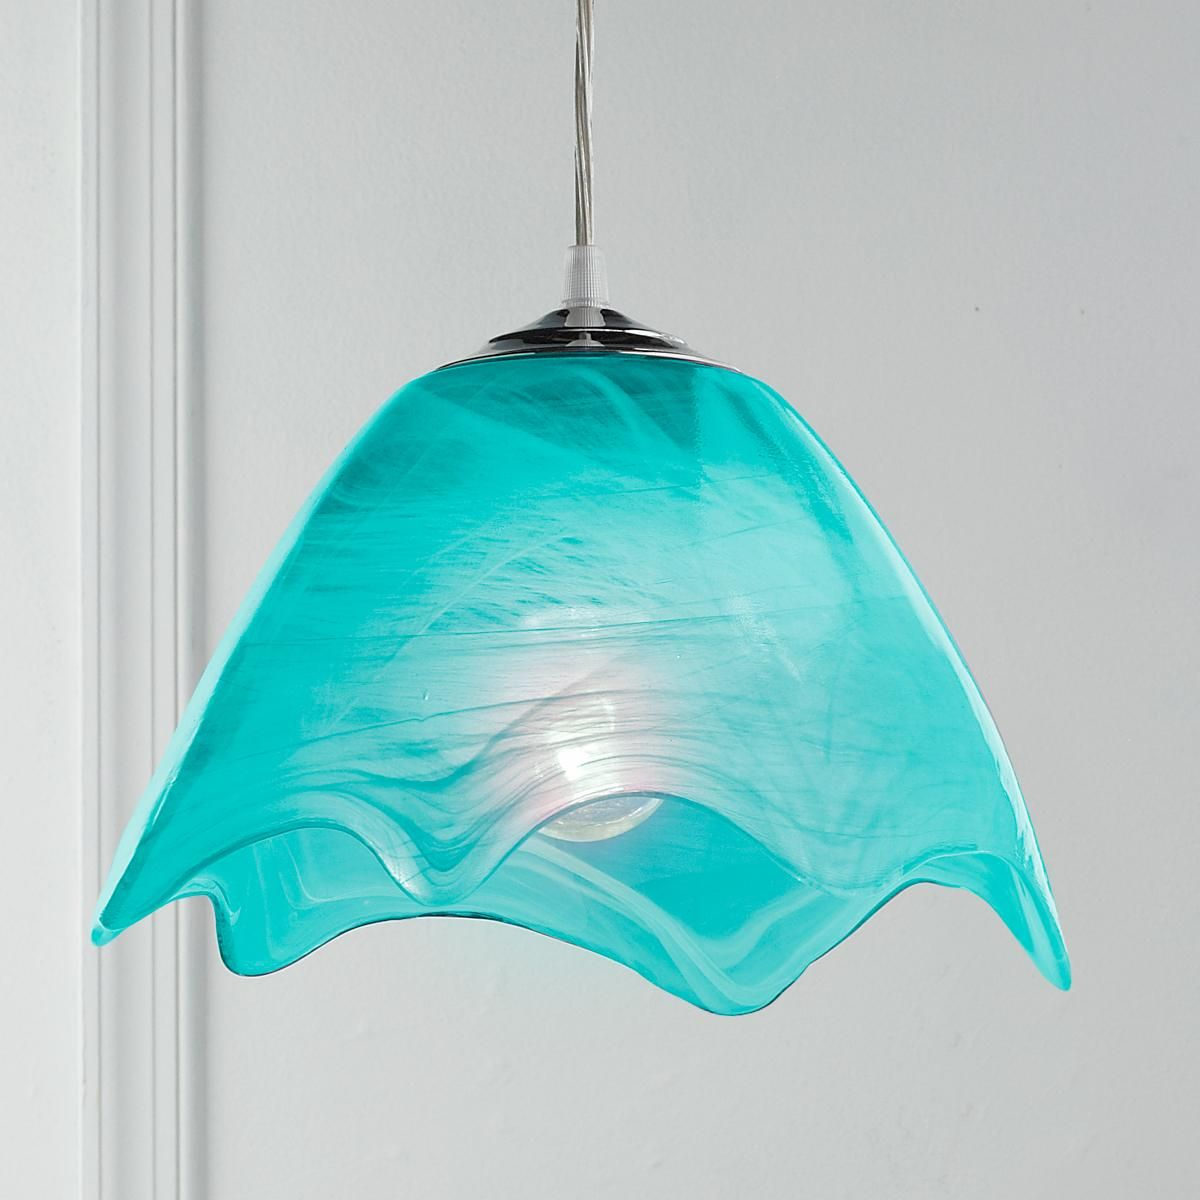 Green Glass Pendant Light Wavy Glass Pendant Light Glass Pendants